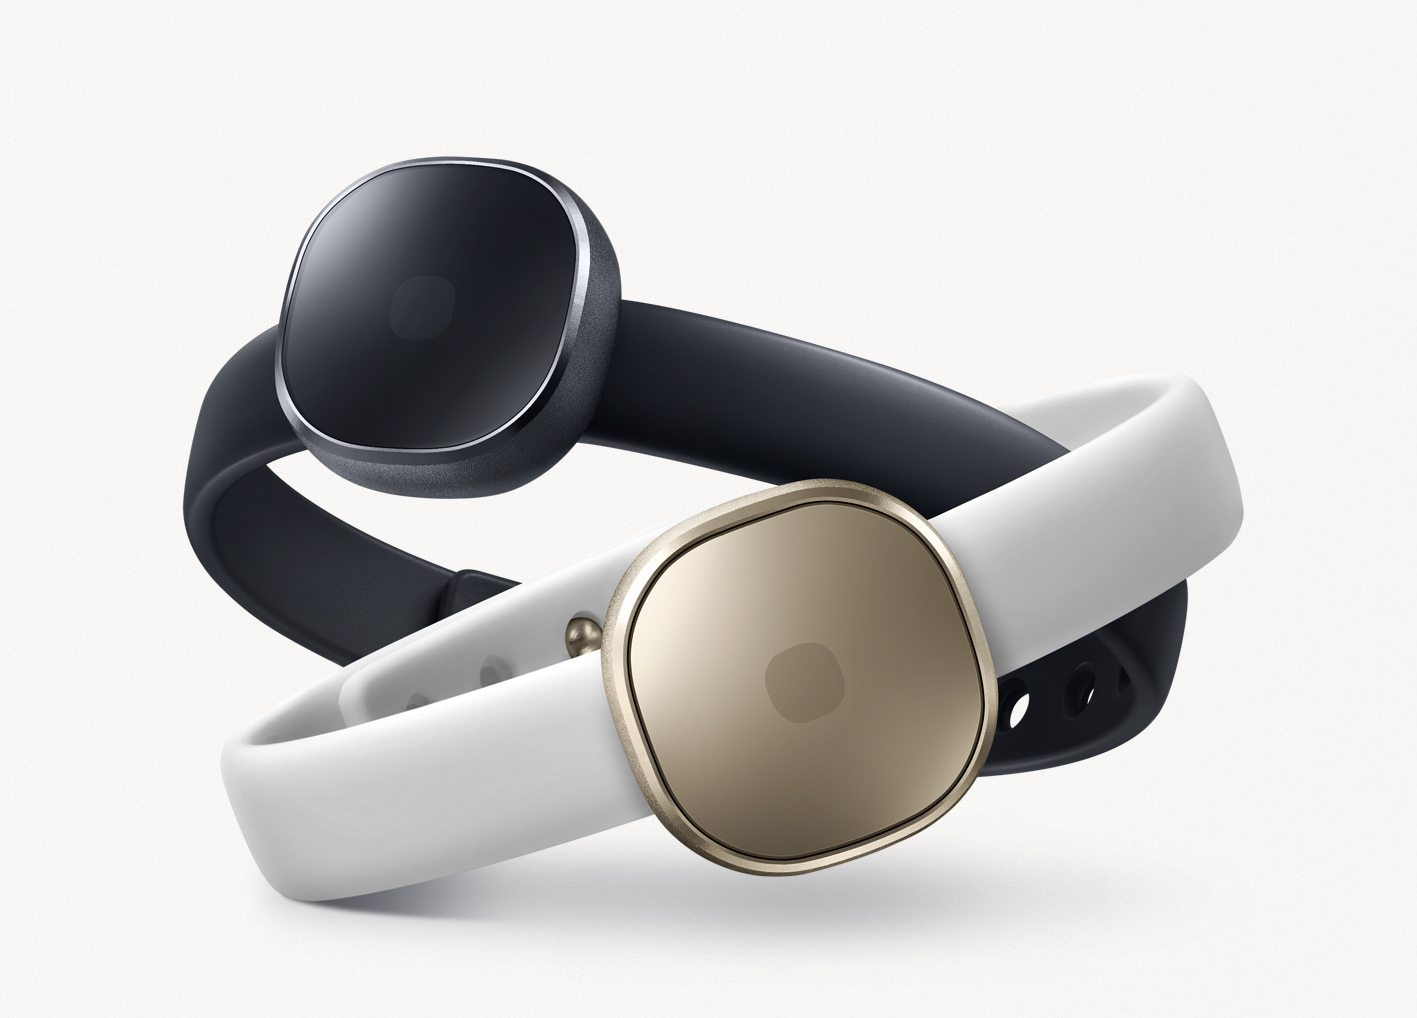 samsung s charm the 40 lifestyle band starts landing internationally - Samsung's Charm, the $40 lifestyle band starts landing internationally